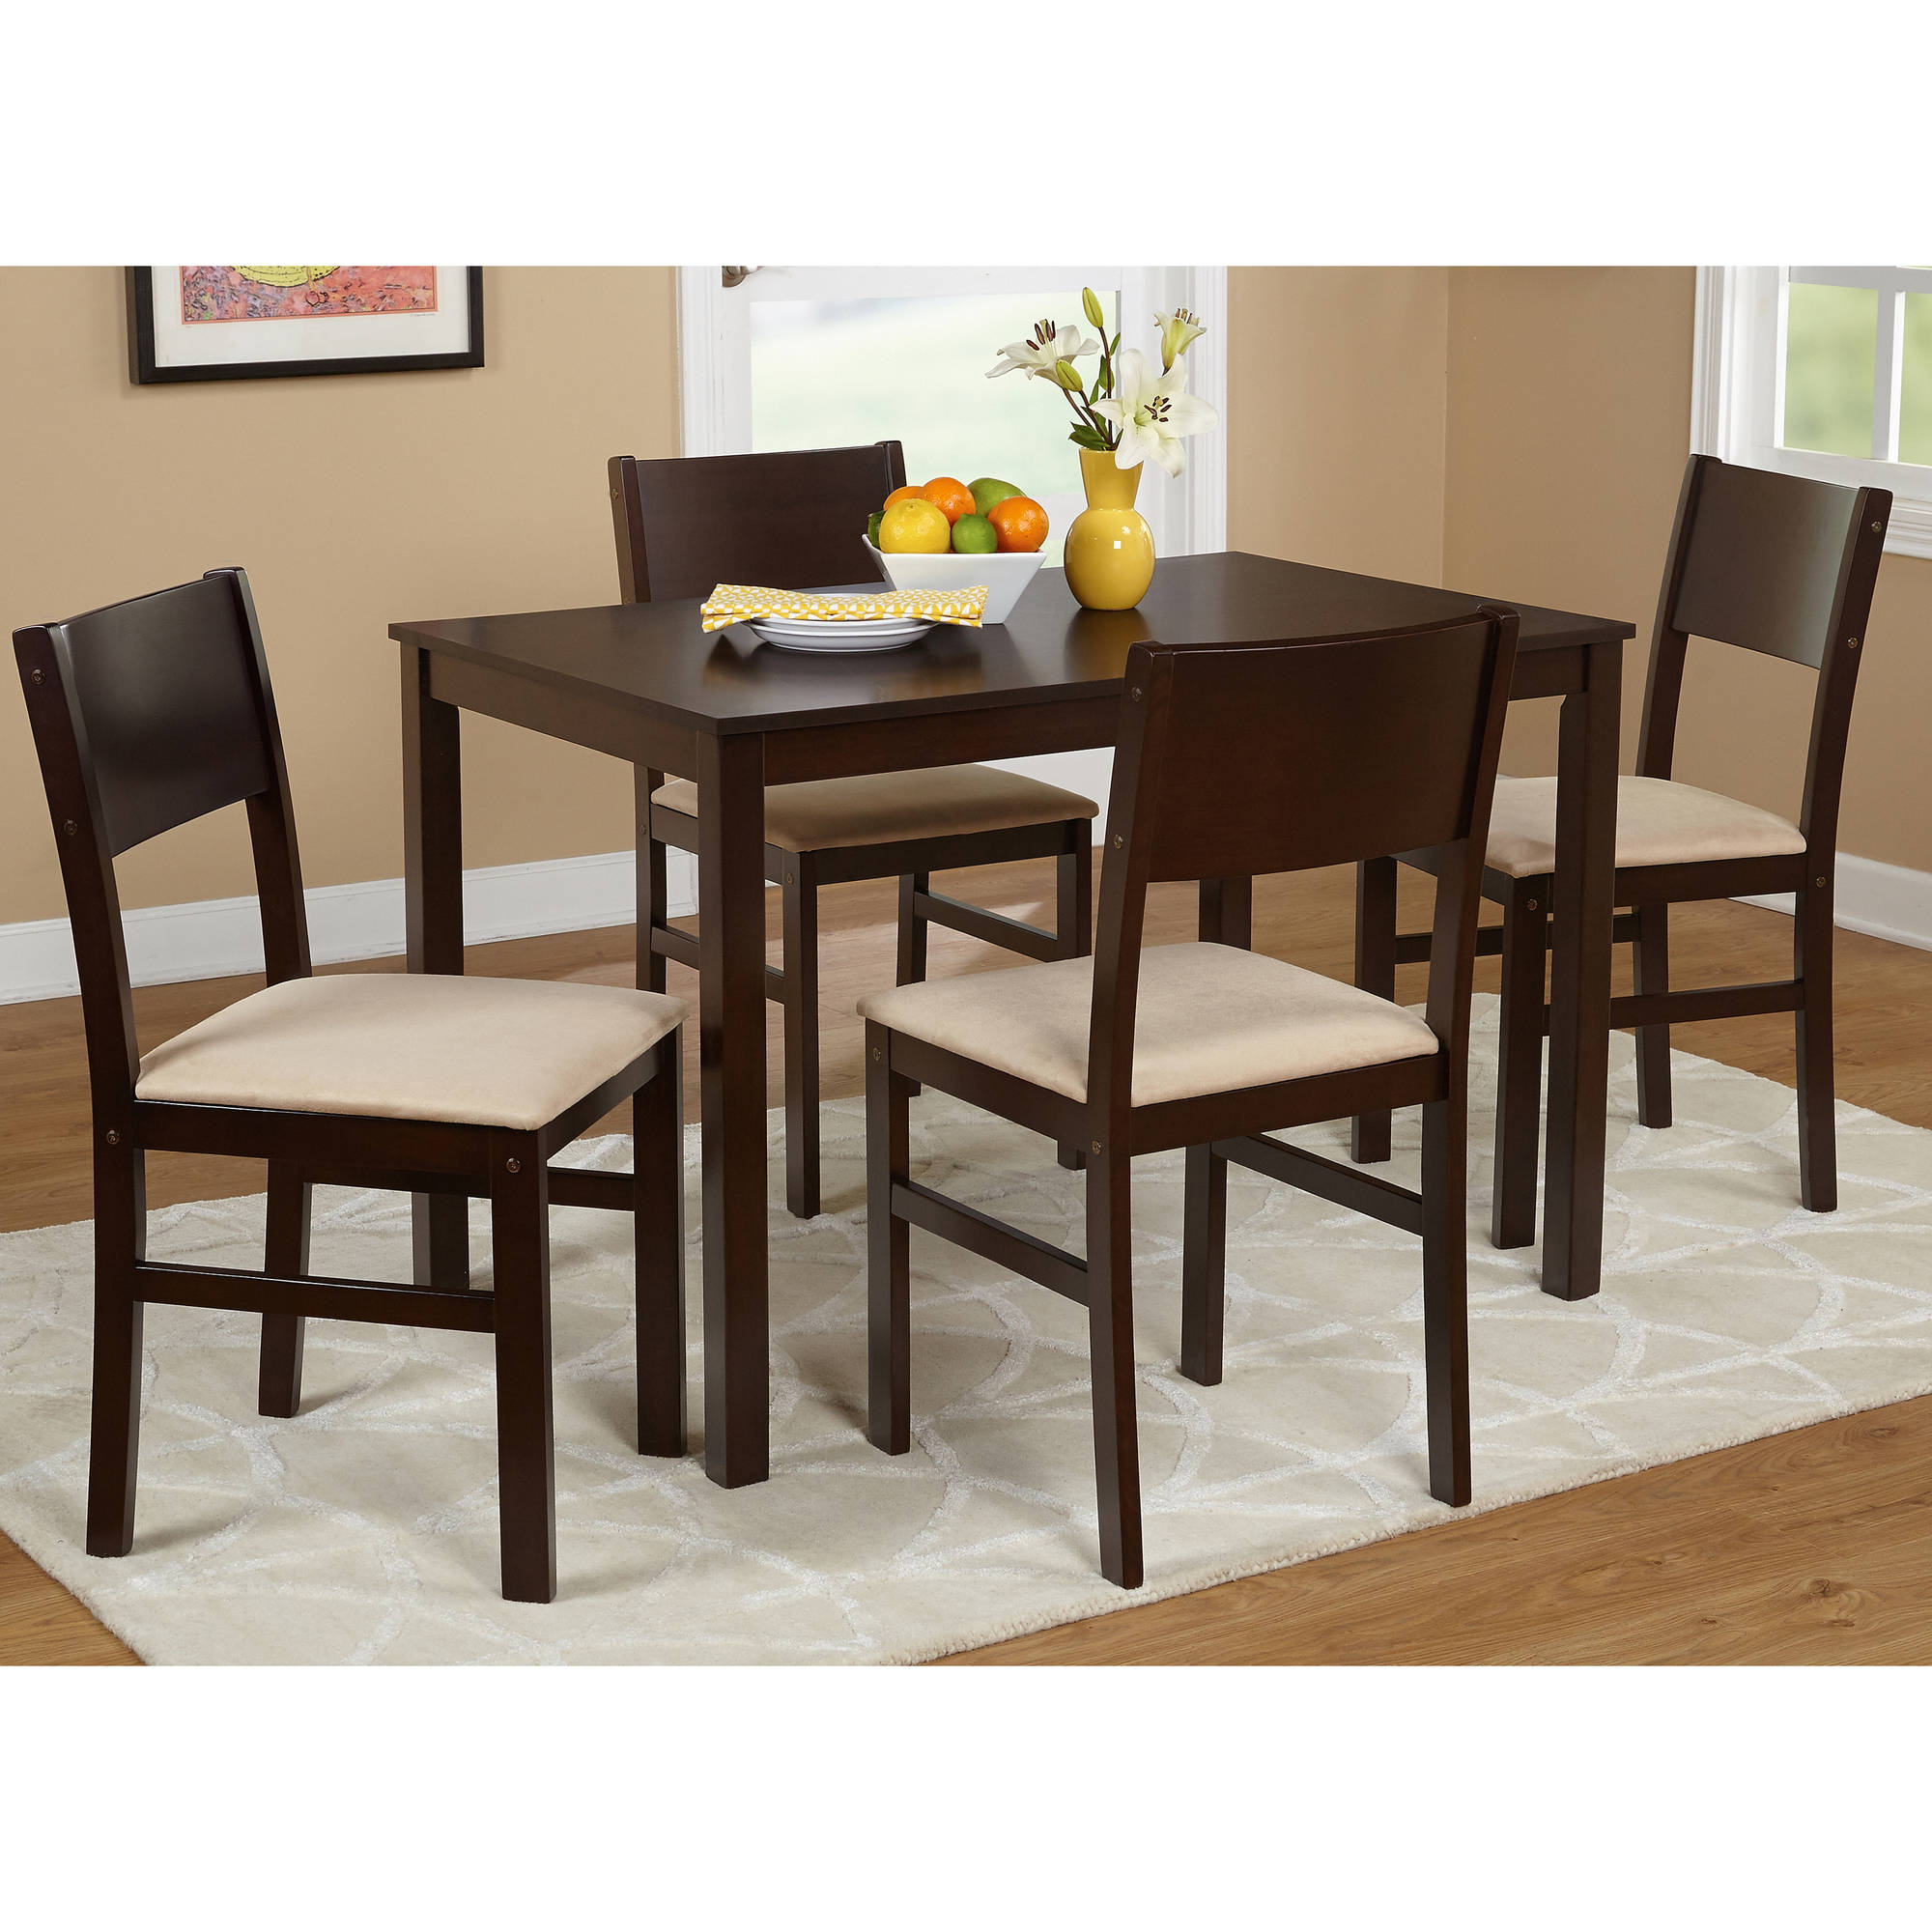 Inspiration about Recent 5 Piece Dining Sets Pertaining To Tms Lucca 5 Piece Dining Set, Multiple Colors – Walmart (#2 of 20)